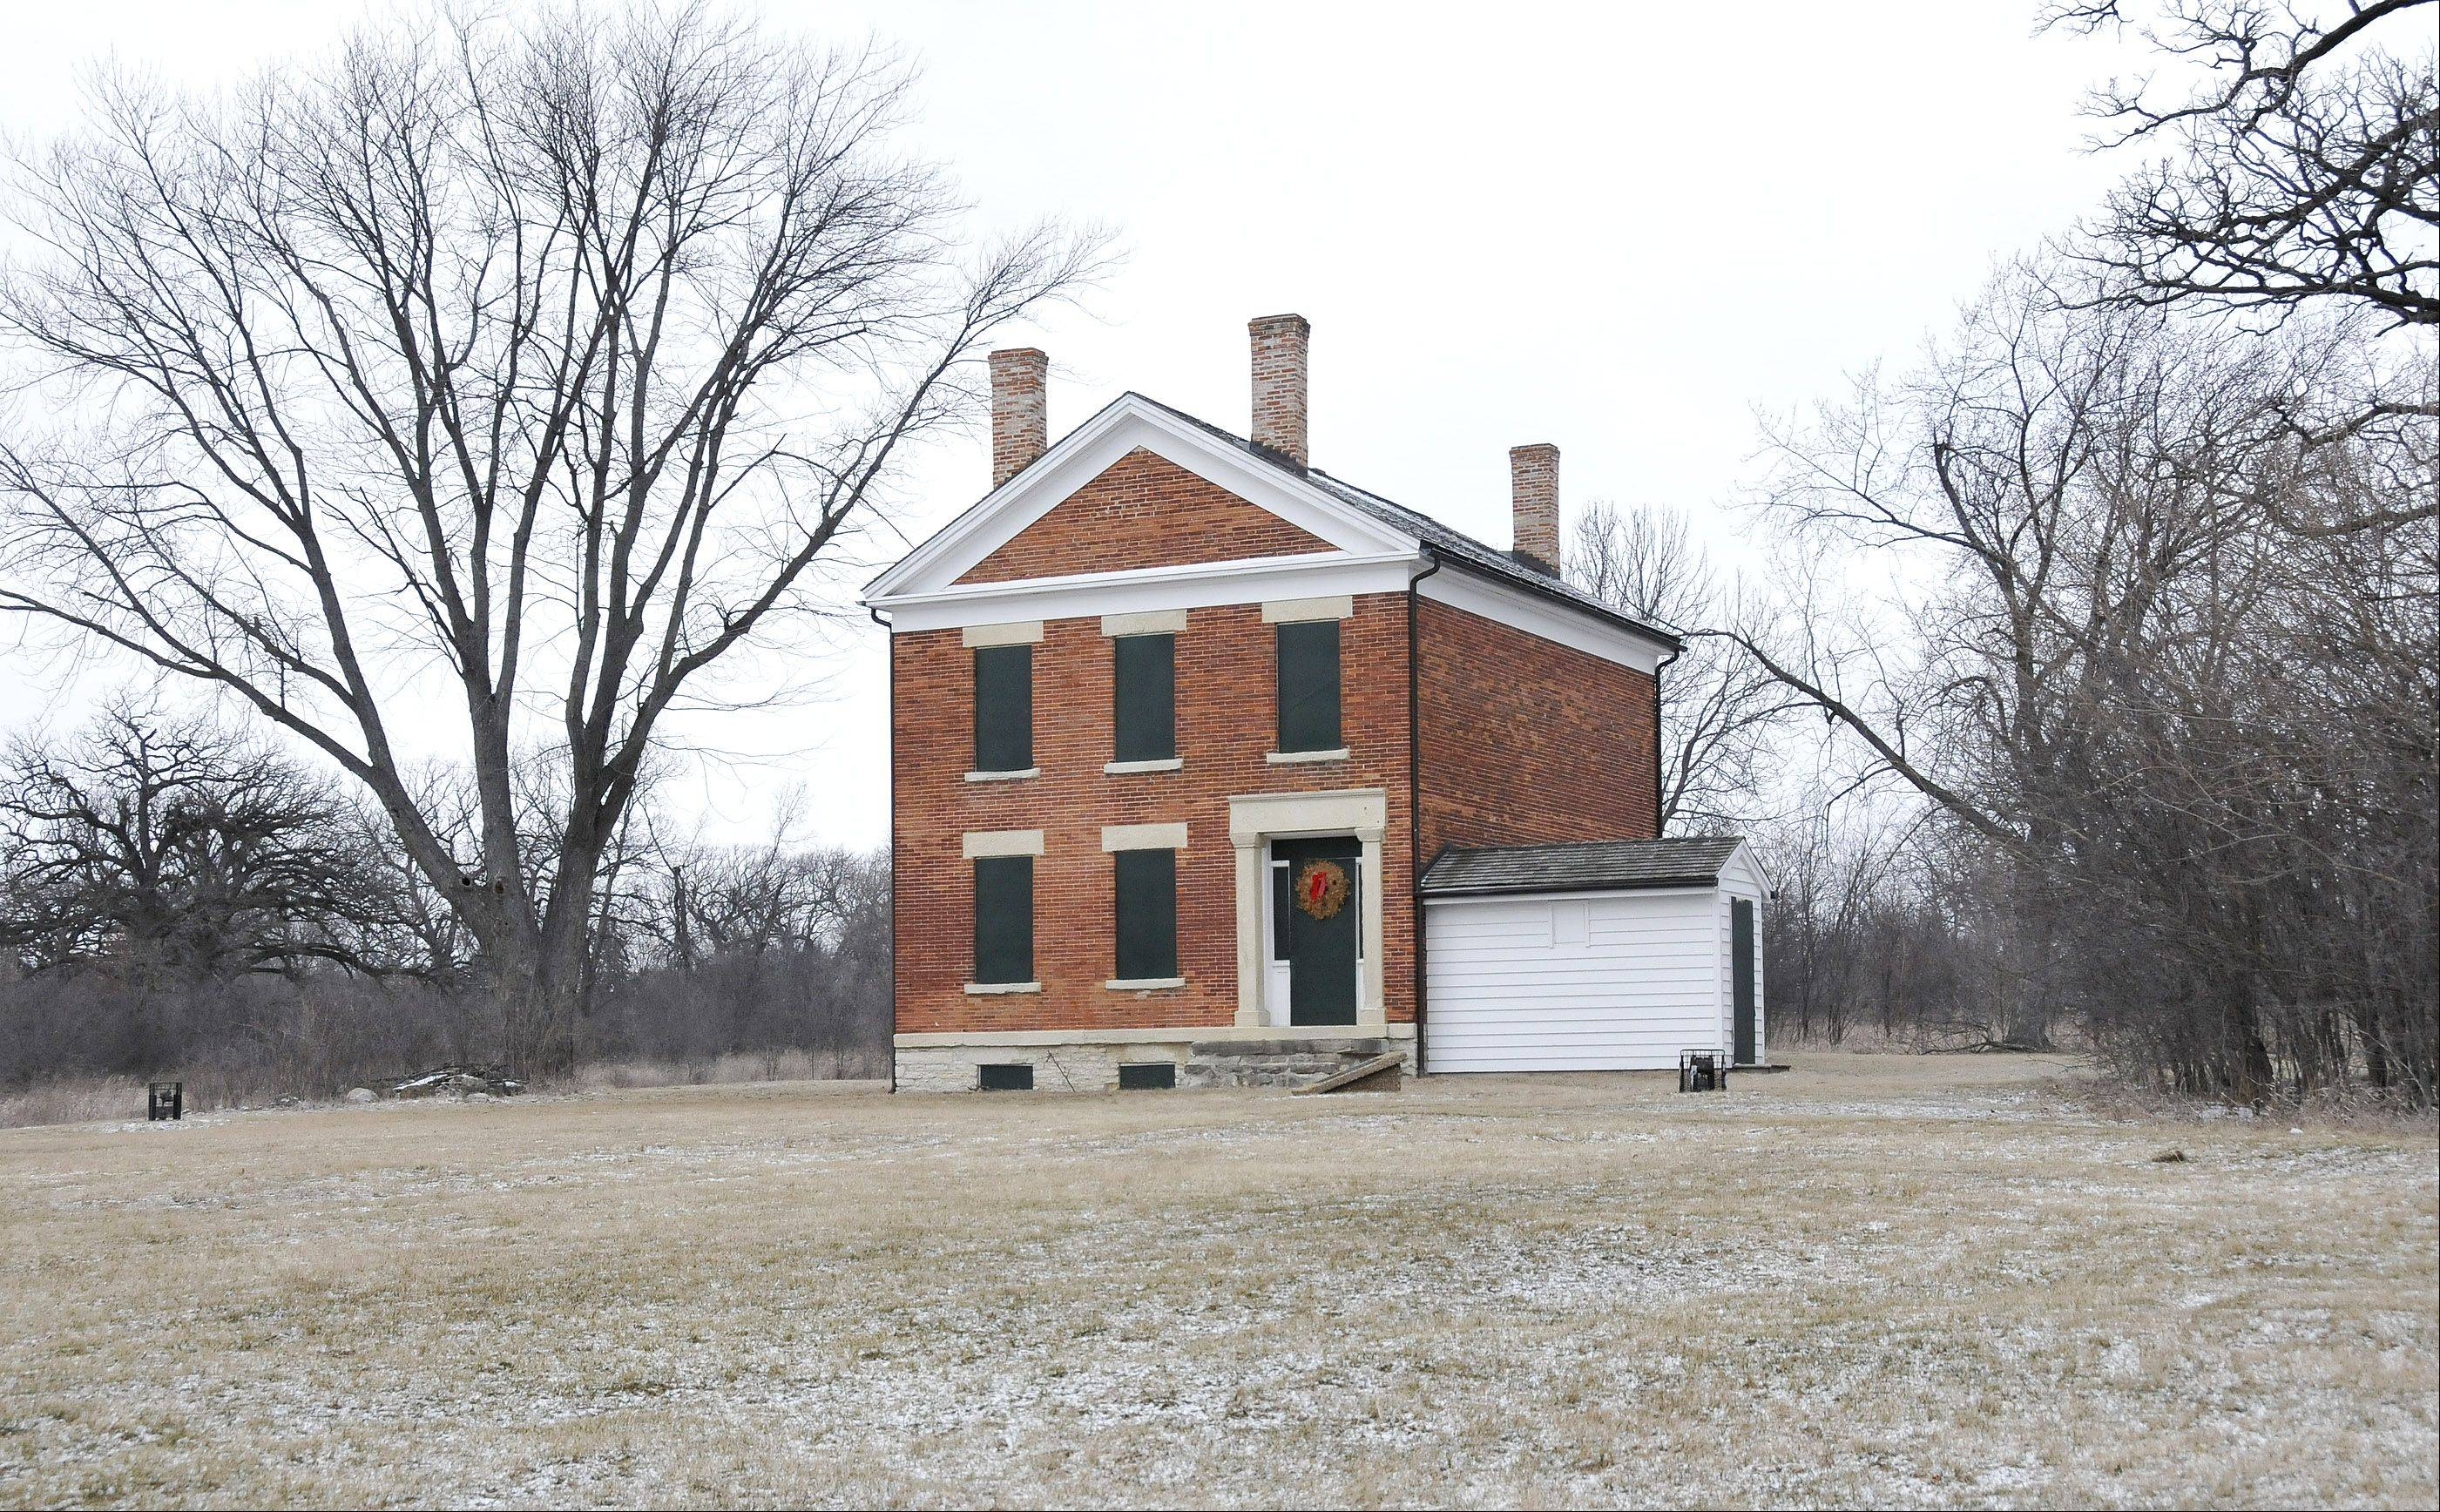 Baker House: Built in the 1840s, the house is believed to be a rare example of Greek Revival architecture in the area and one of the oldest brick homes in DuPage. Preservationists saved the home from disrepair and demolition in the mid-1990s.